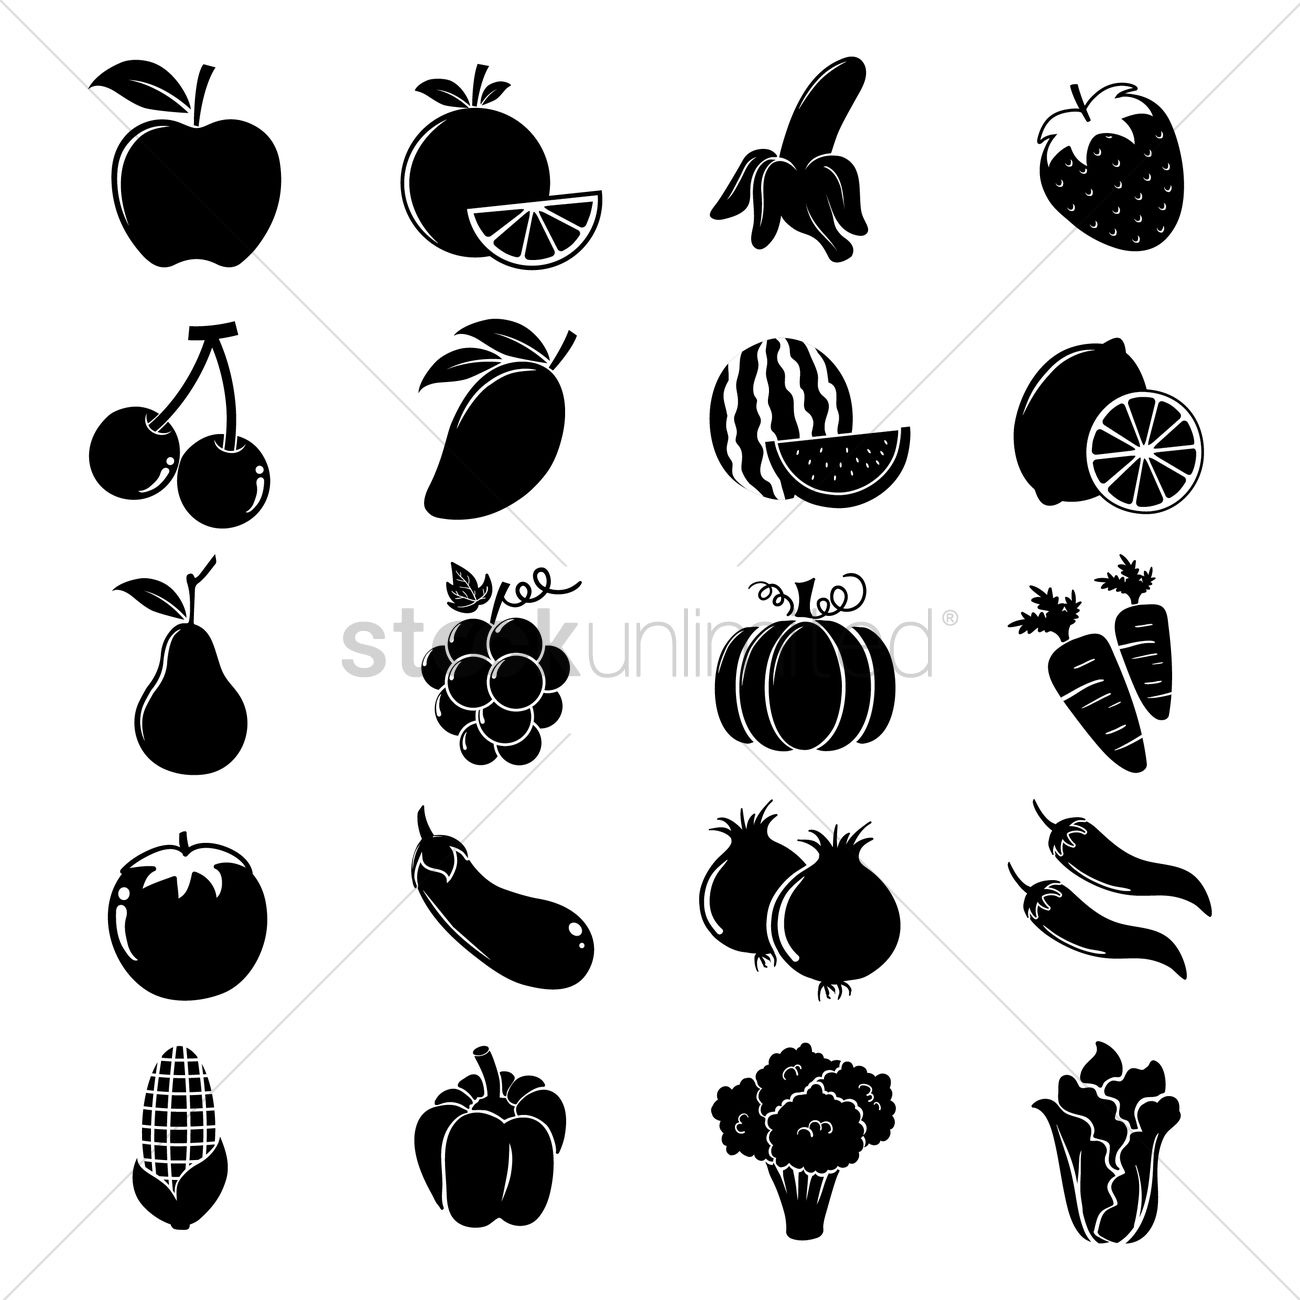 D Line Drawings Vegetables : Fruit and vegetable silhouettes vector image